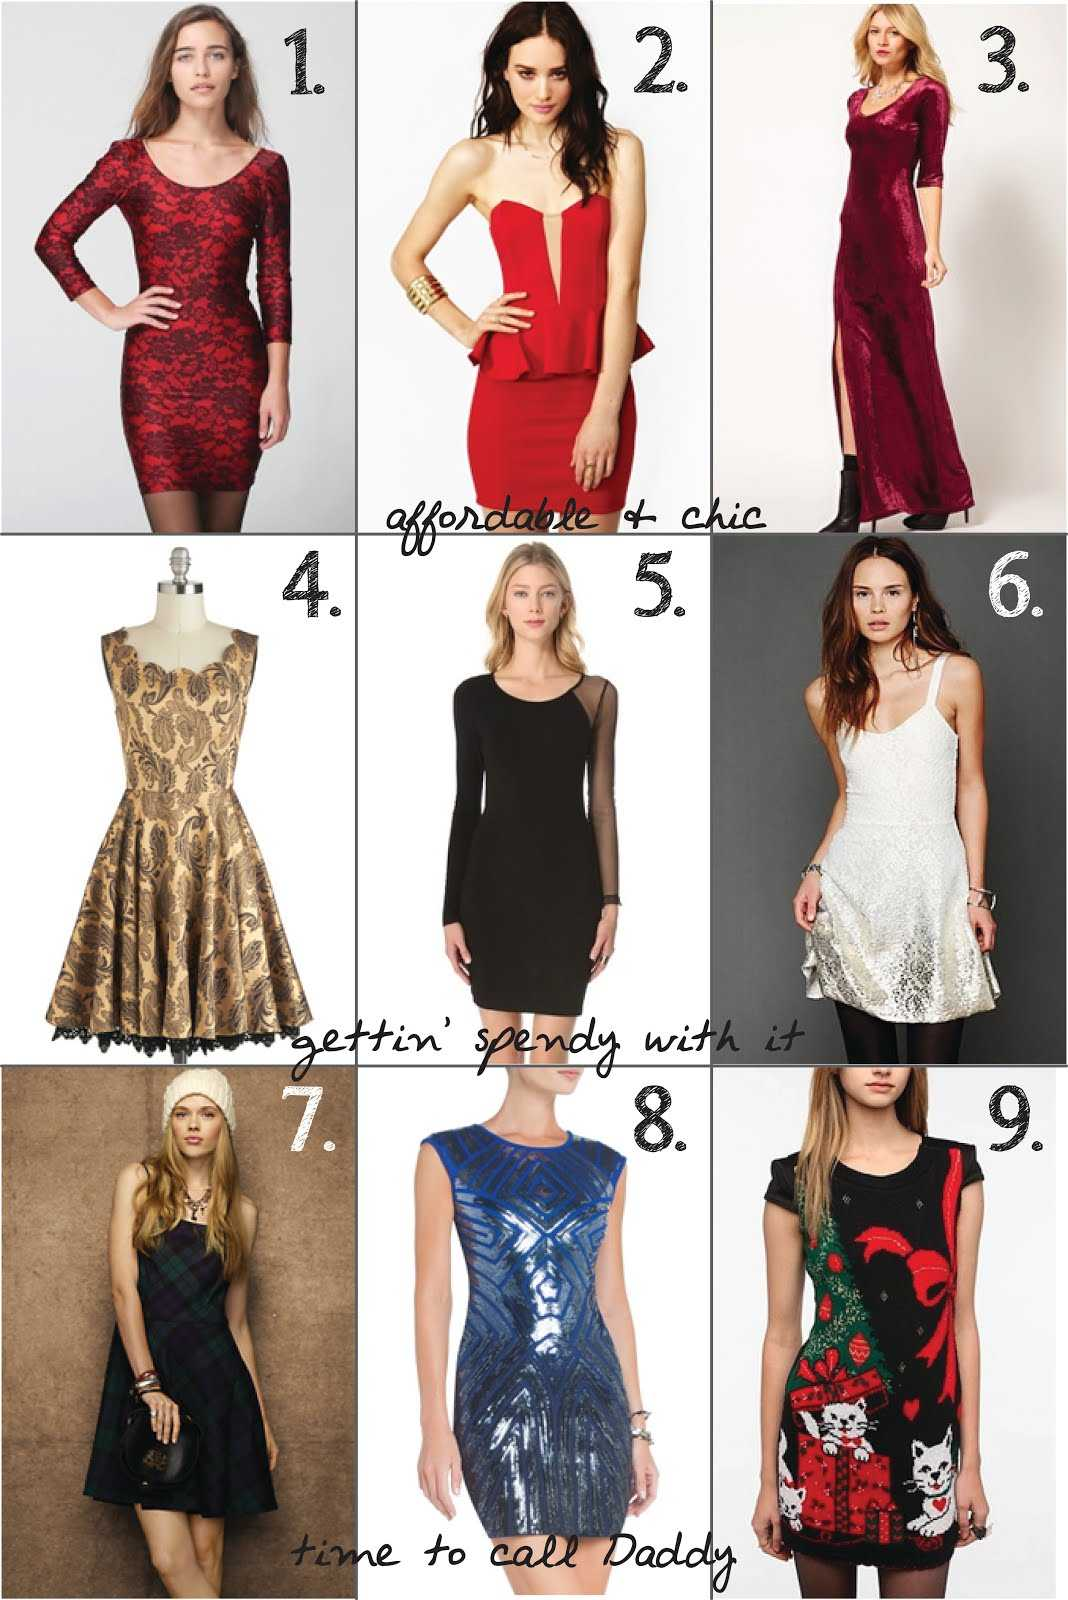 Some cool dresses